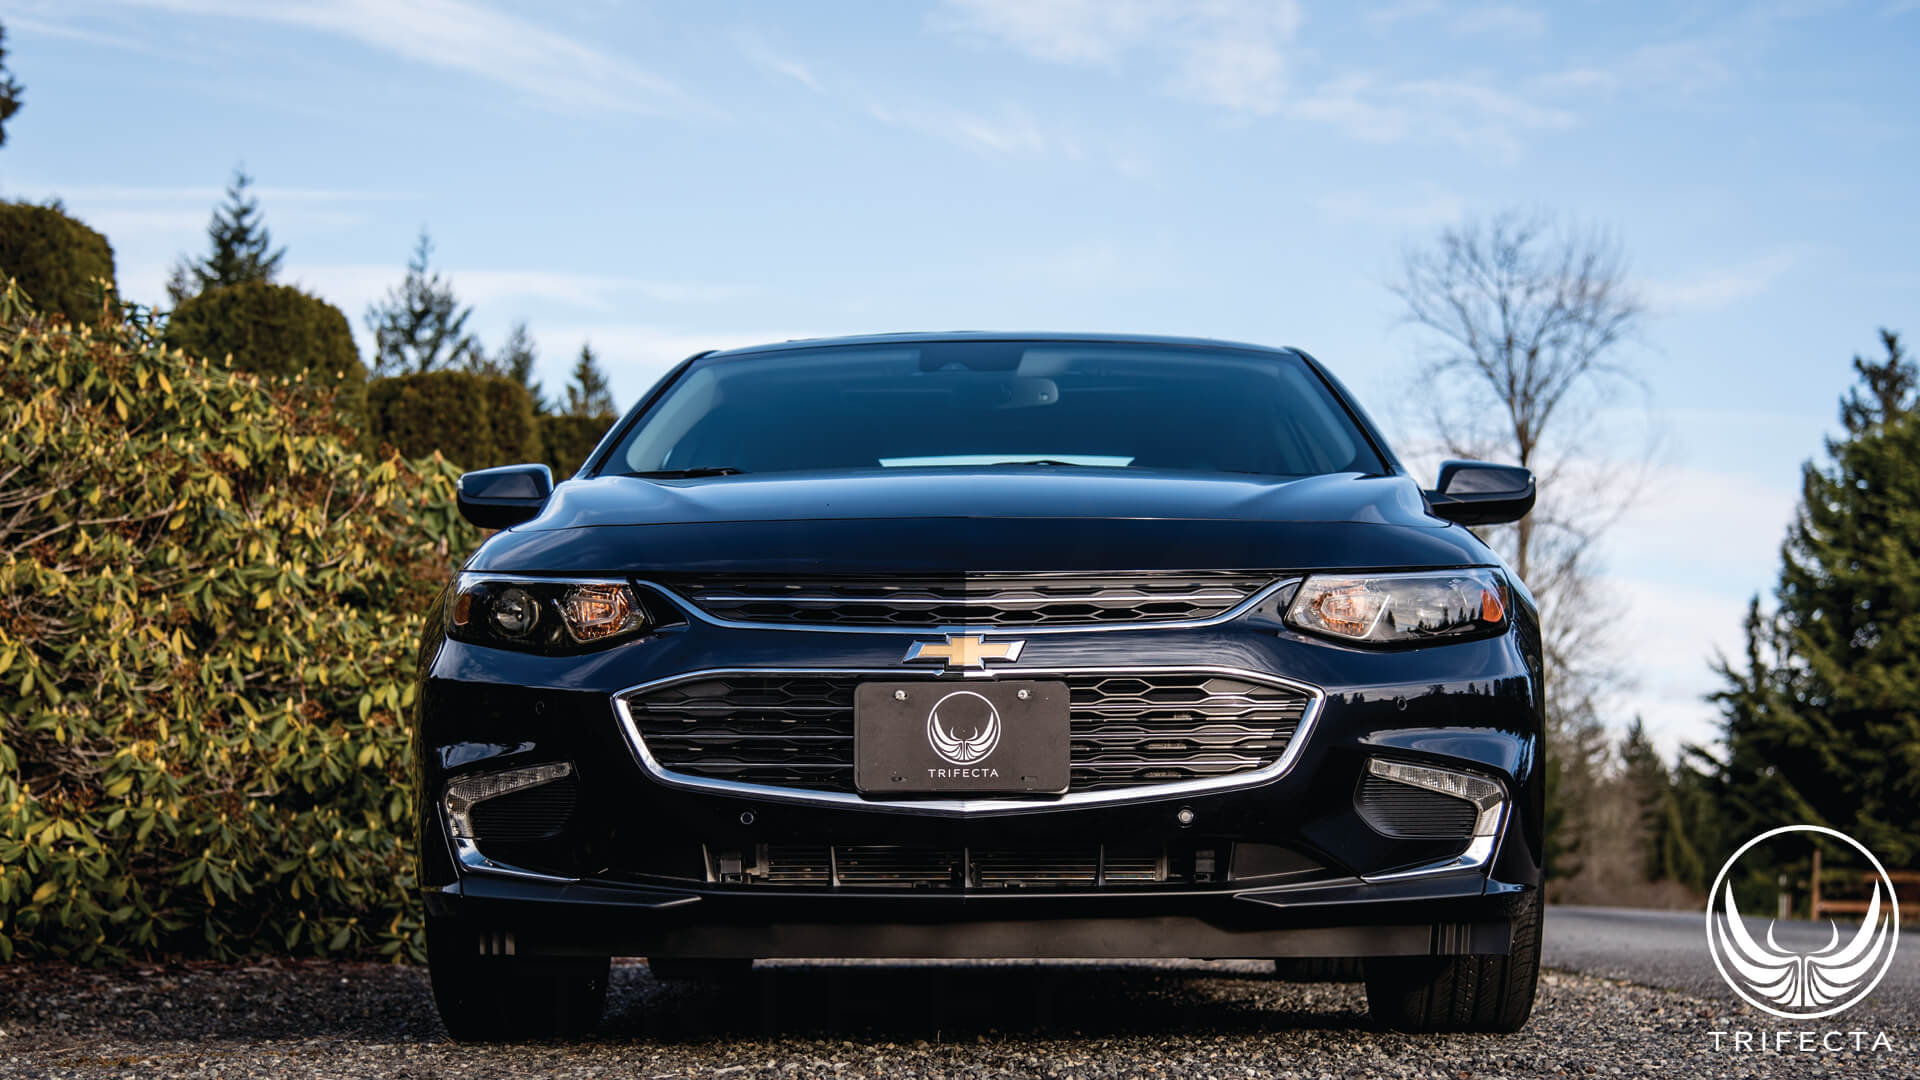 Product Review: 2016--2017 Chevrolet Malibu - 1.5L Turbo - Elite